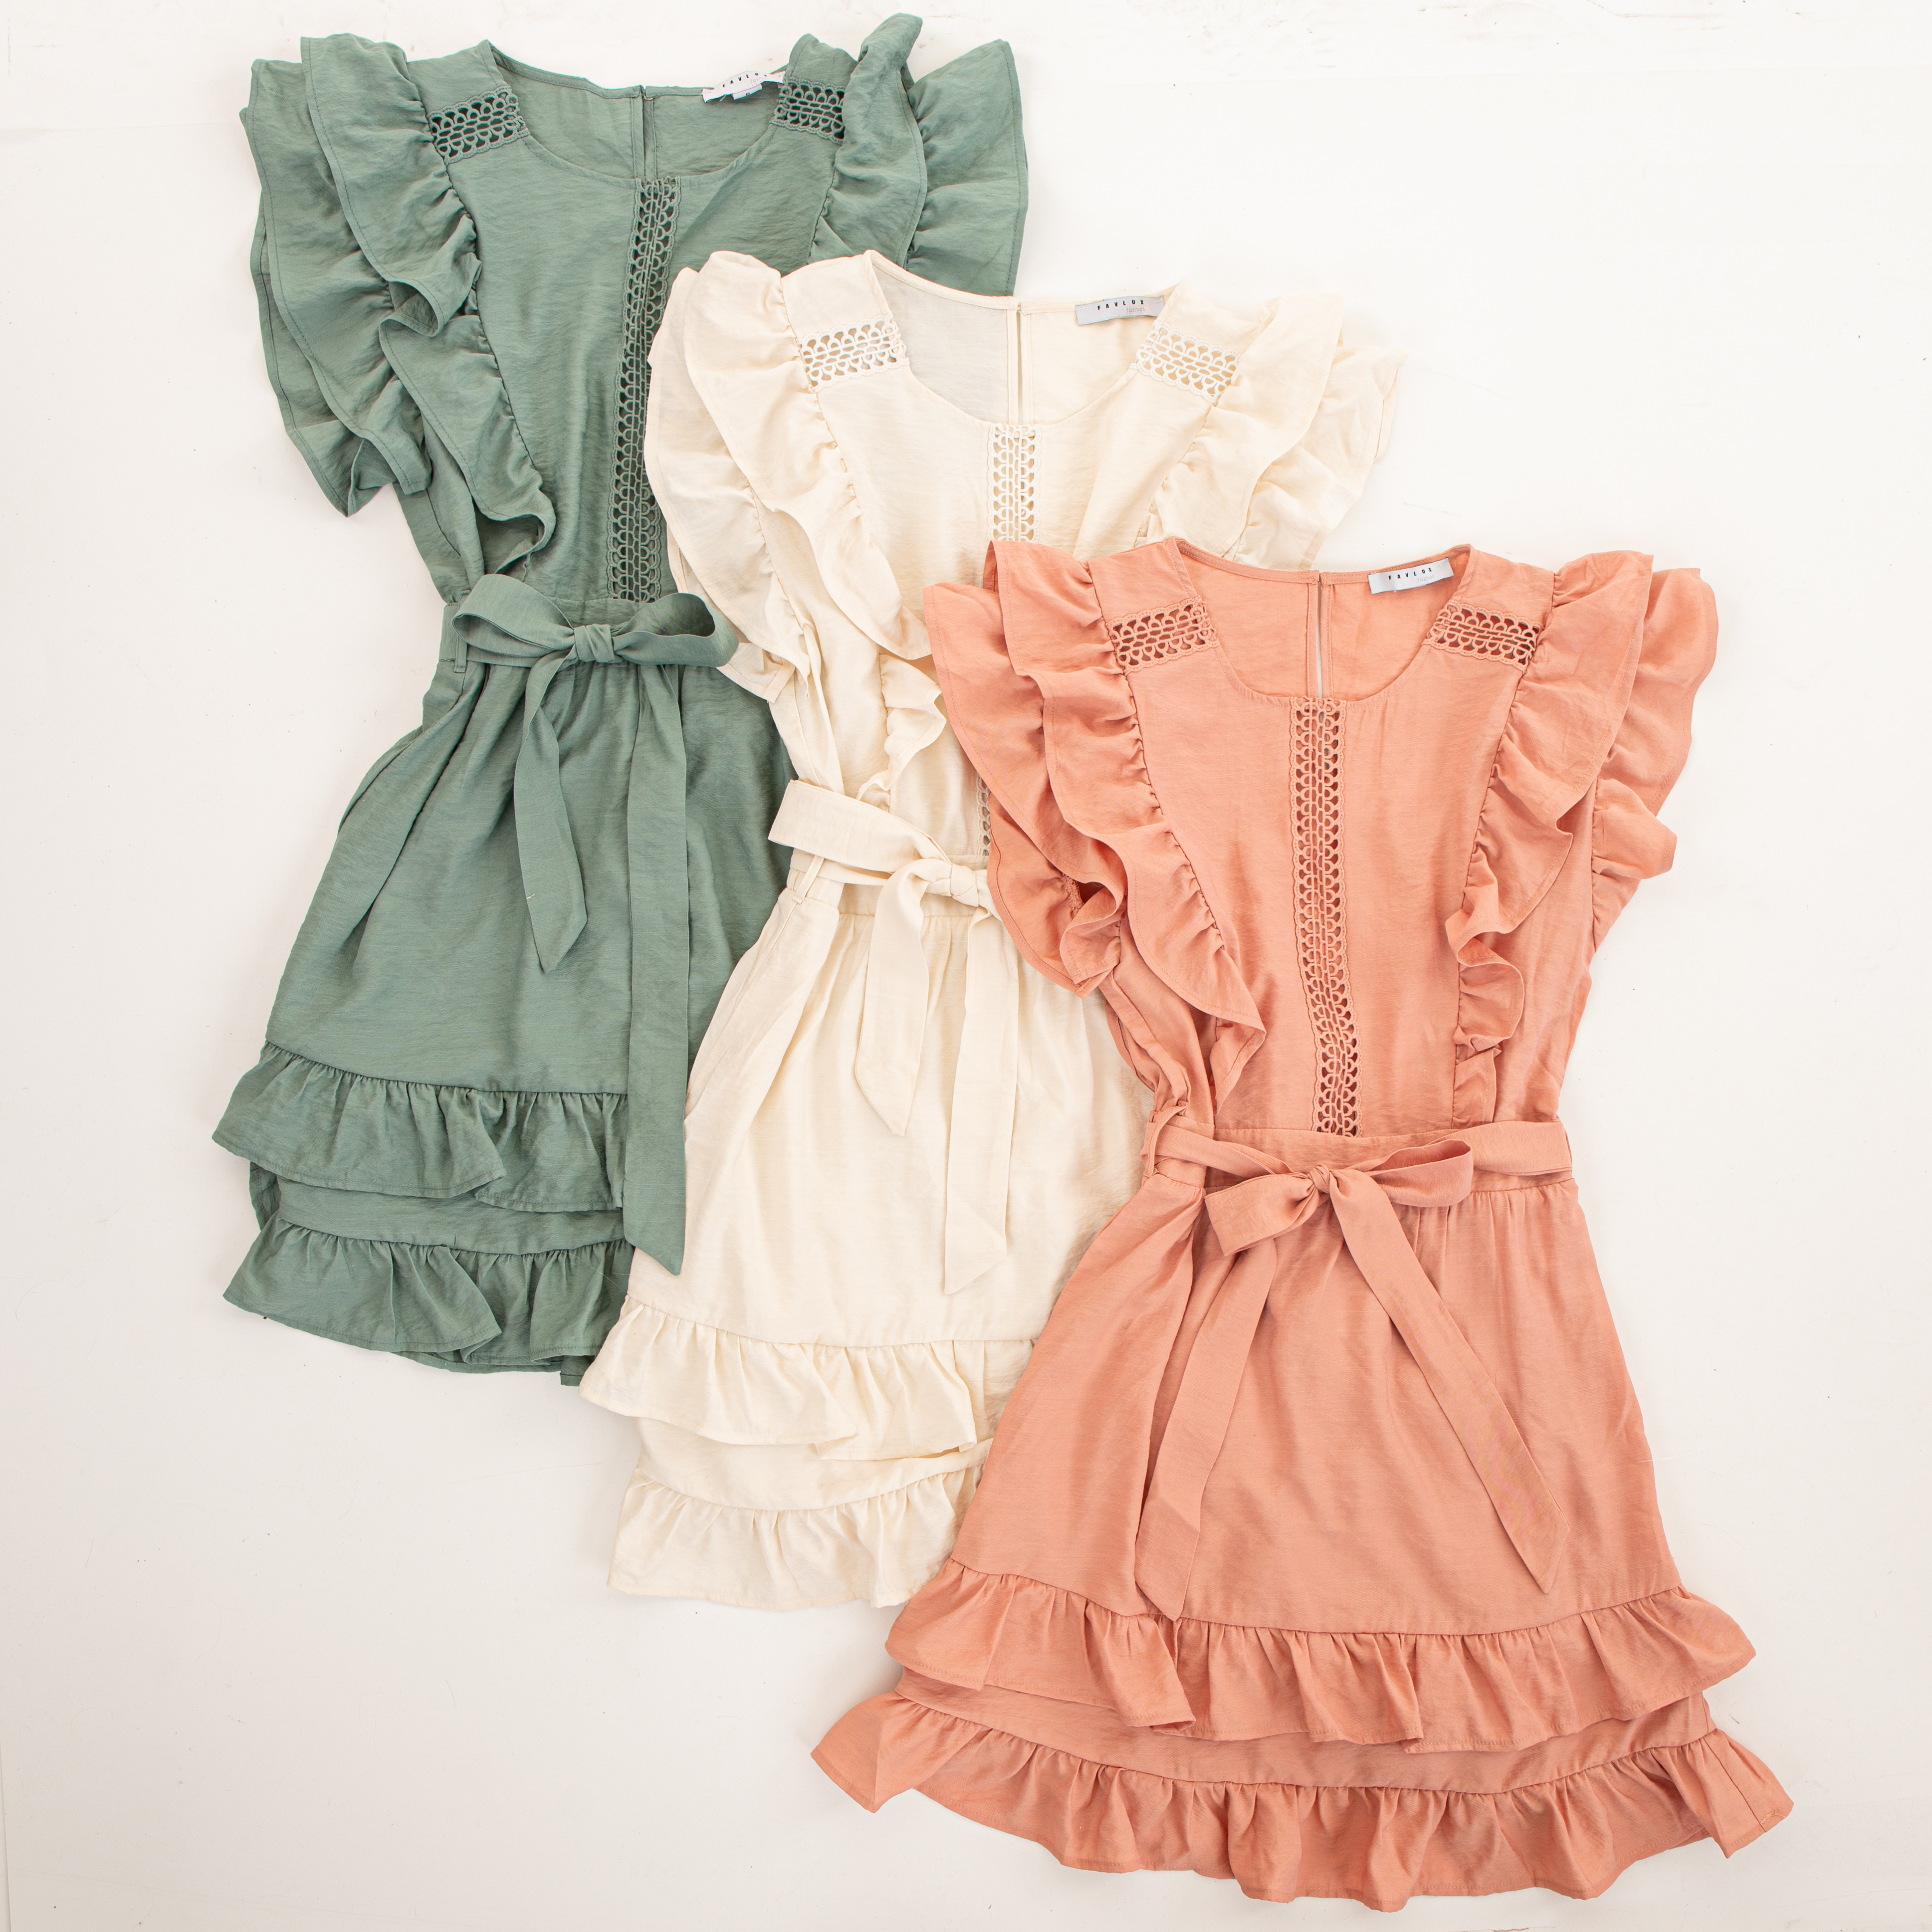 Apricot Short Sleeve Short Dress with Ruffle and Tie Detail